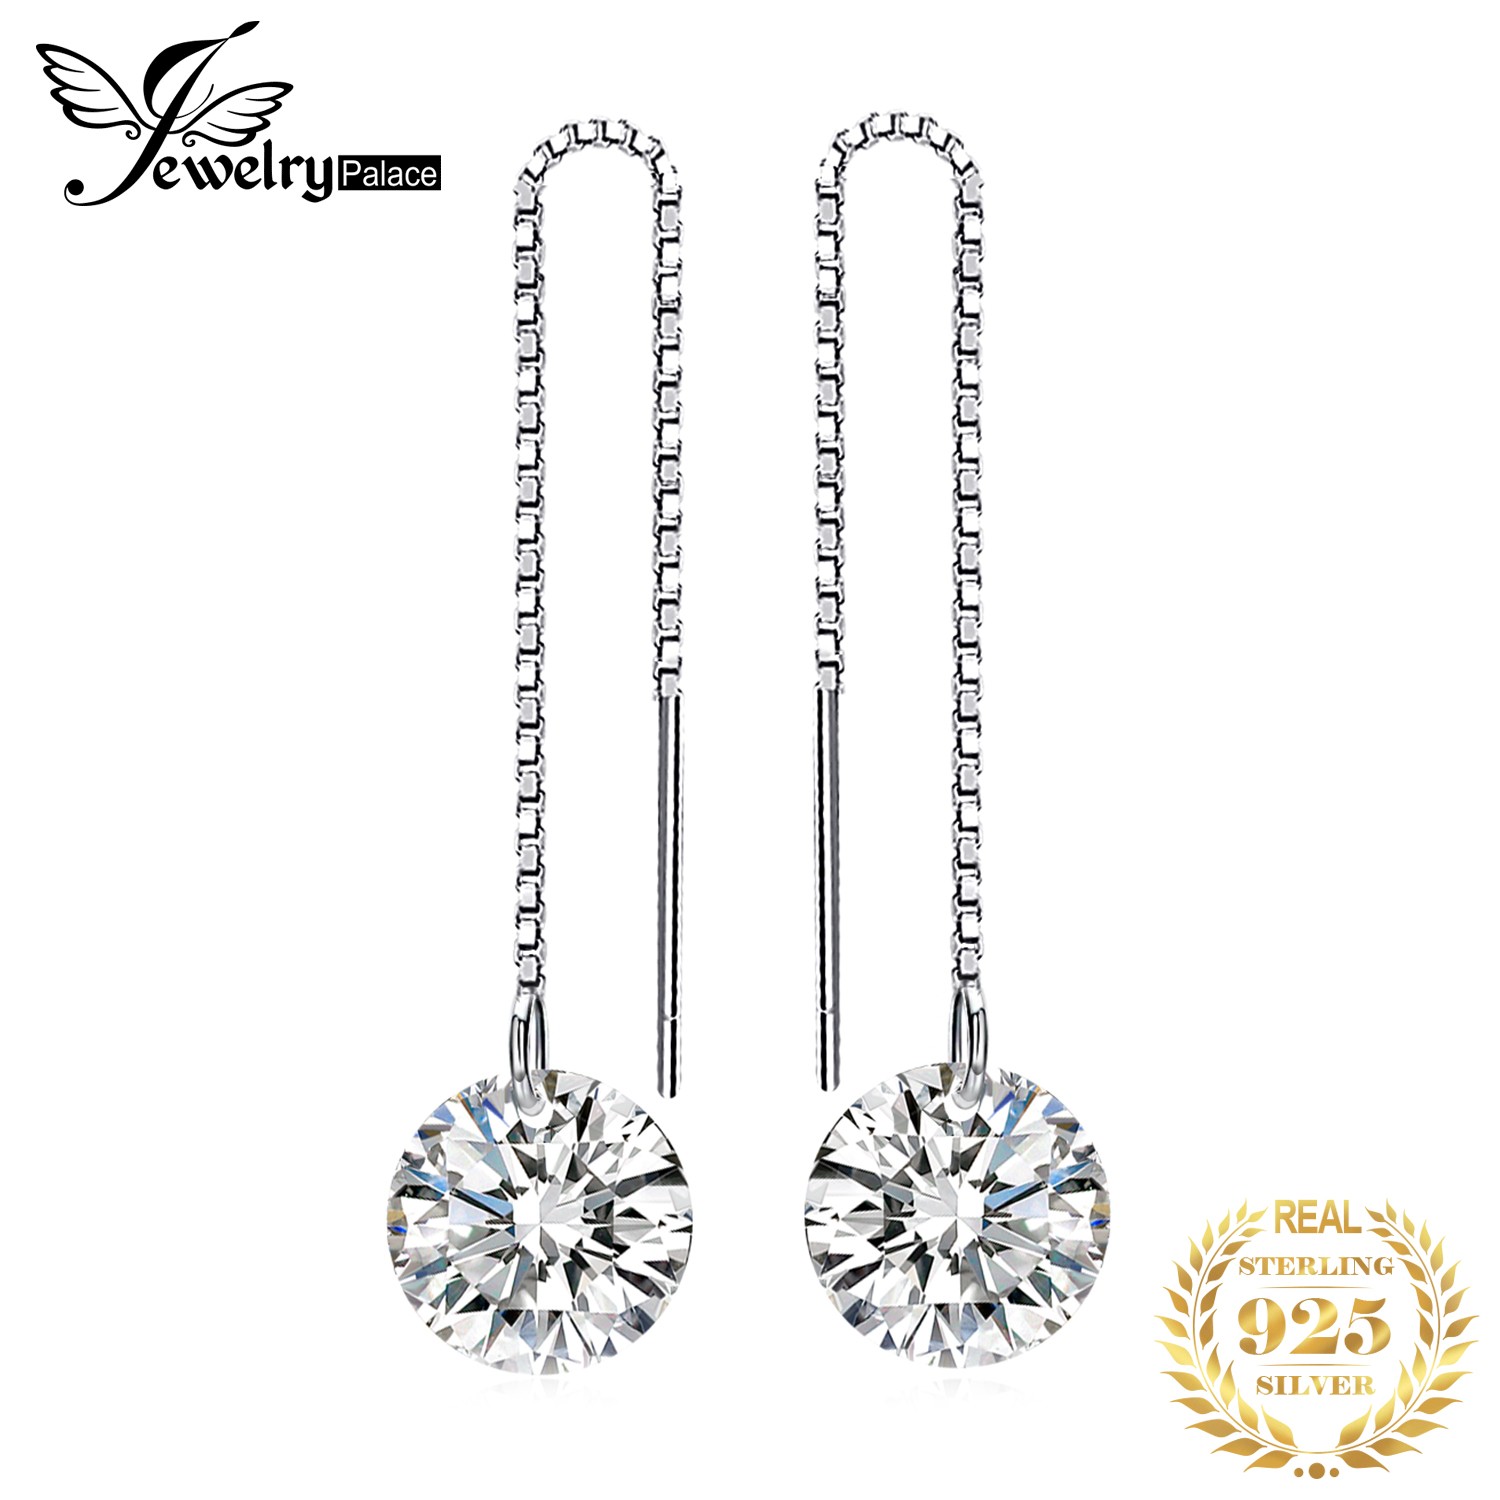 JewelryPalace 925 Sterling Silver Cubic Zirconia CZ Long Drop Earrings For Women Korean Earrings 2020 Earings Fashion Jewelry